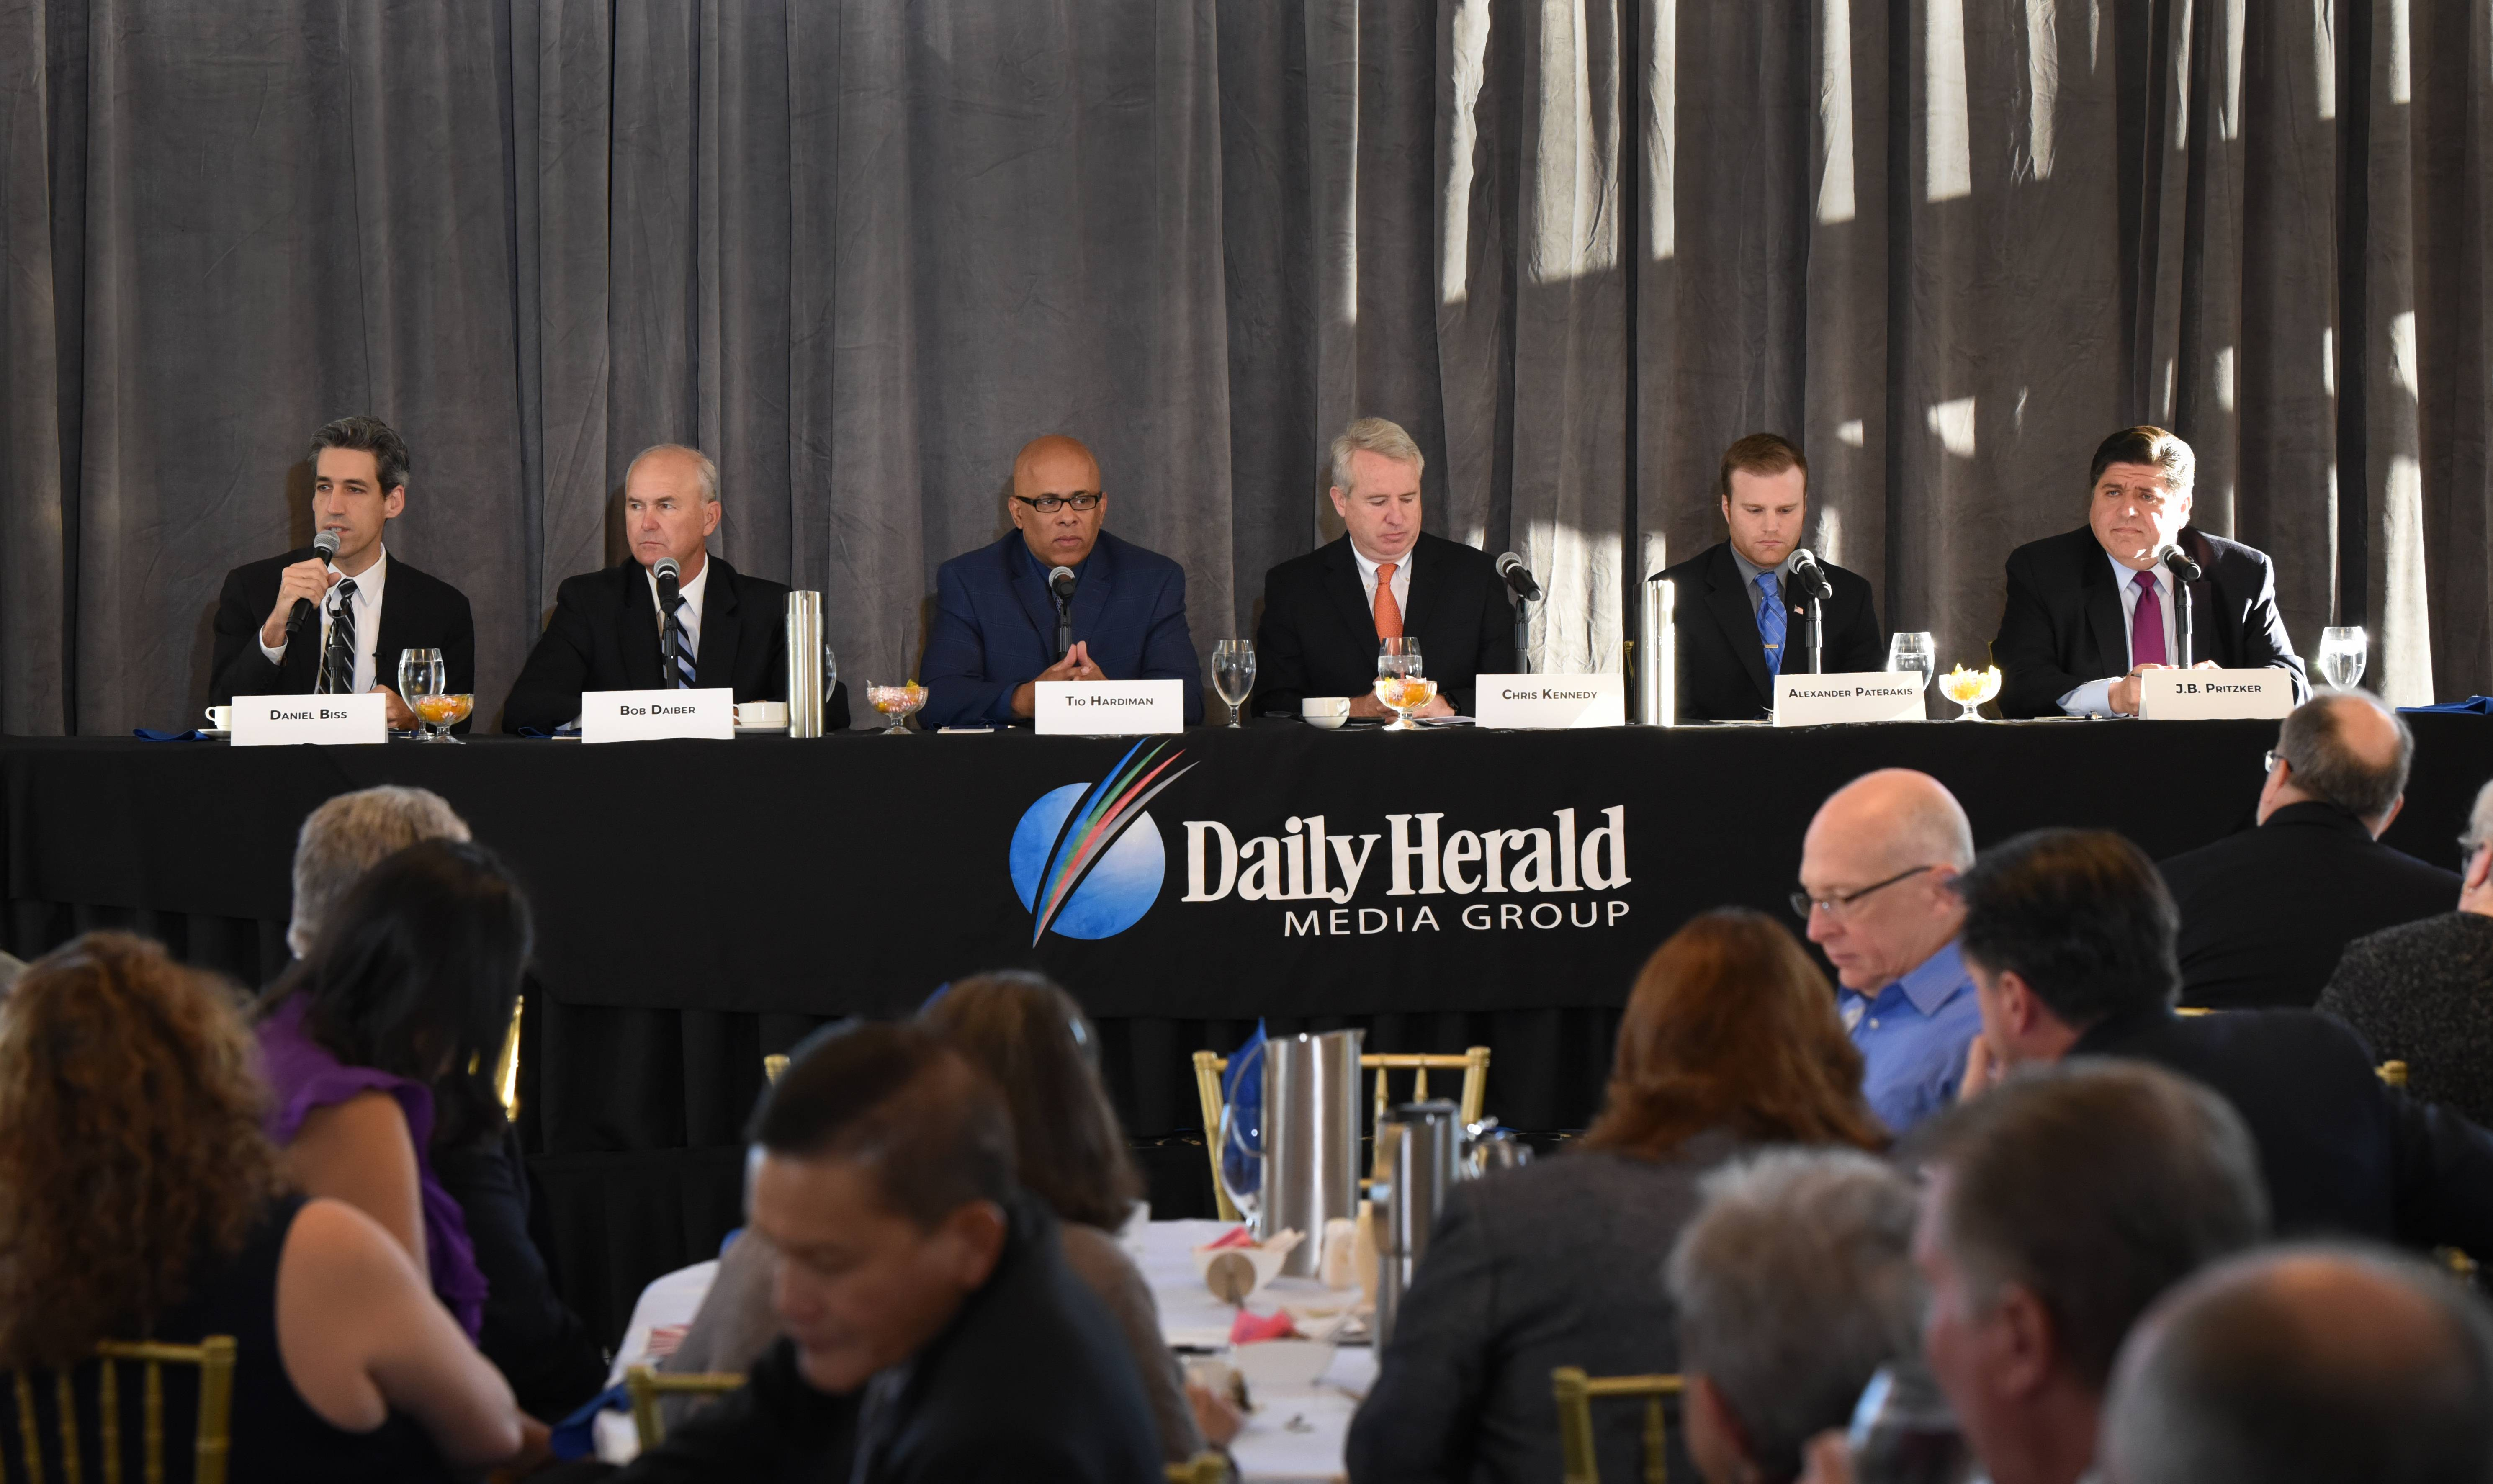 Democratic gubernatorial candidates, left to right, Daniel Biss, Bob Daiber, Tio Hardiman, Chris Kennedy, Alexander Paterakis and J.B. Pritzker answer questions about their candidacy Wednesday morning in Mount Prospect.